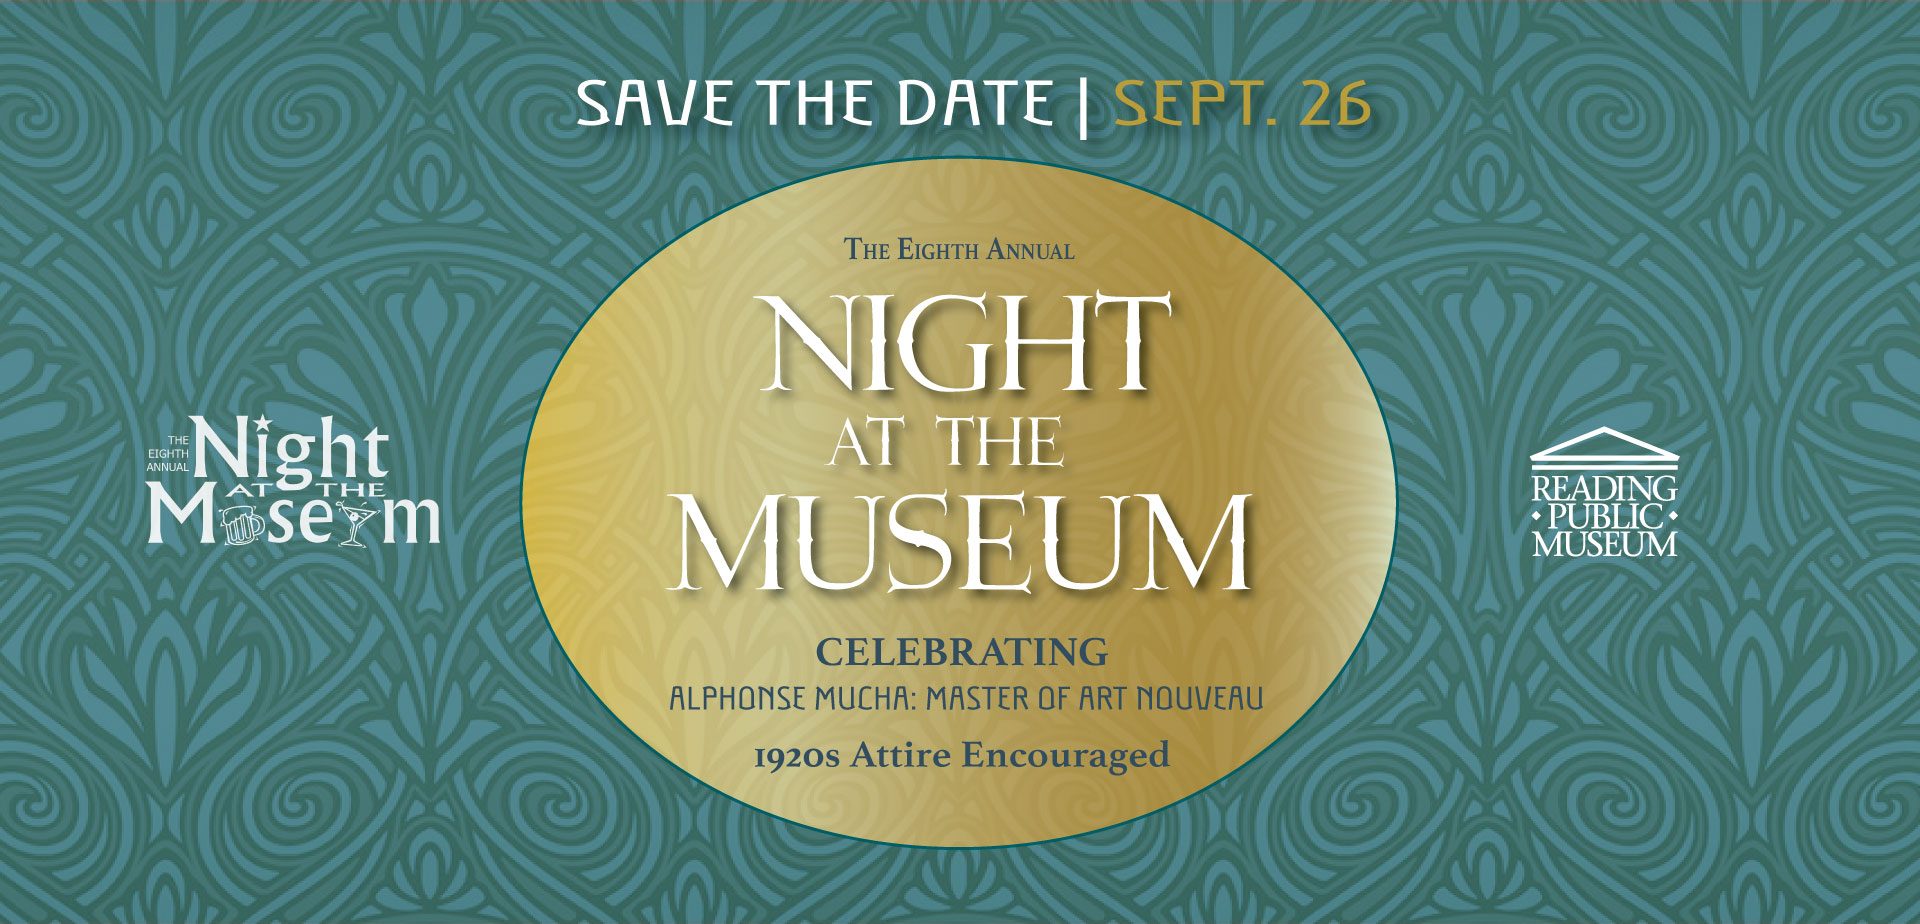 The Eighth Annual Night at The Museum